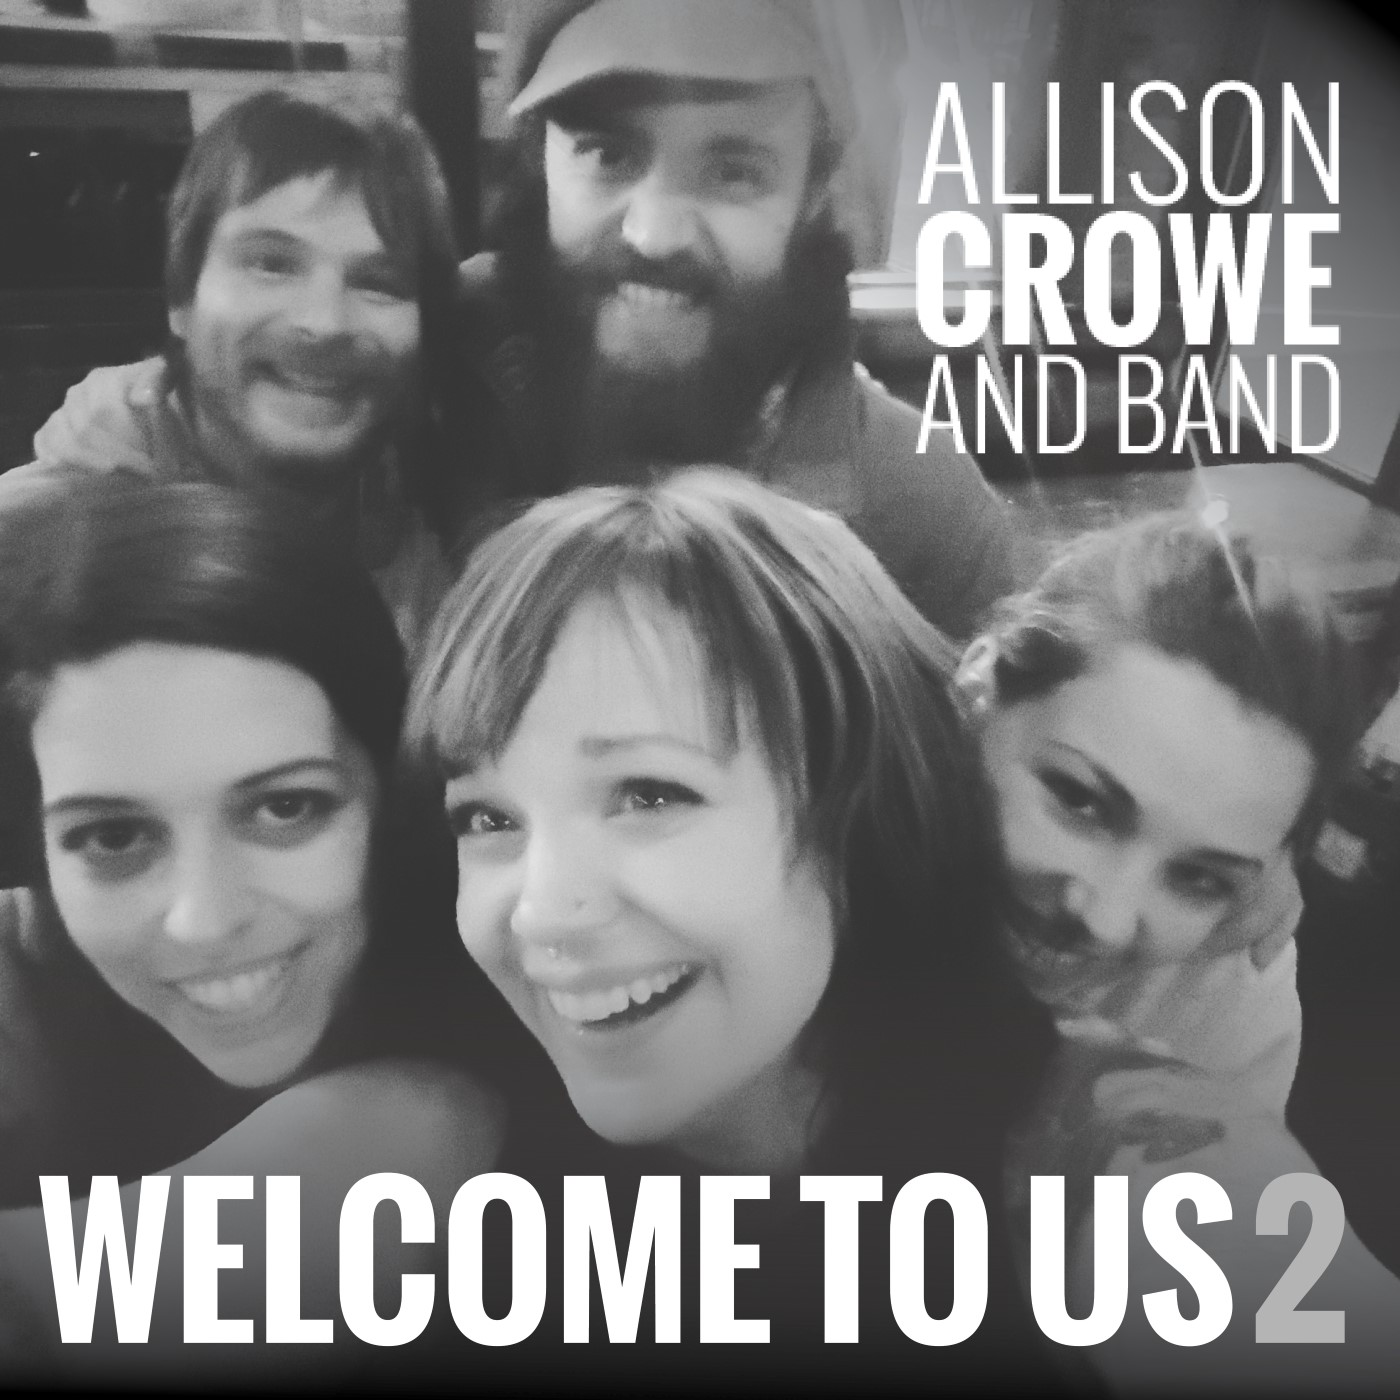 For such acts of creative genius, and just pure joy, take a bow Allison Crowe (composer, vocals, piano, guitar, fiddle, bodhran), Céline Sawchuk (cello, vocals), Sarah White (mandolin, guitar, vocals), Dave Baird (bass, vocals) and Keelan Purchase (accordion, 12-string guitar, bodhran, harmonica, vocals).